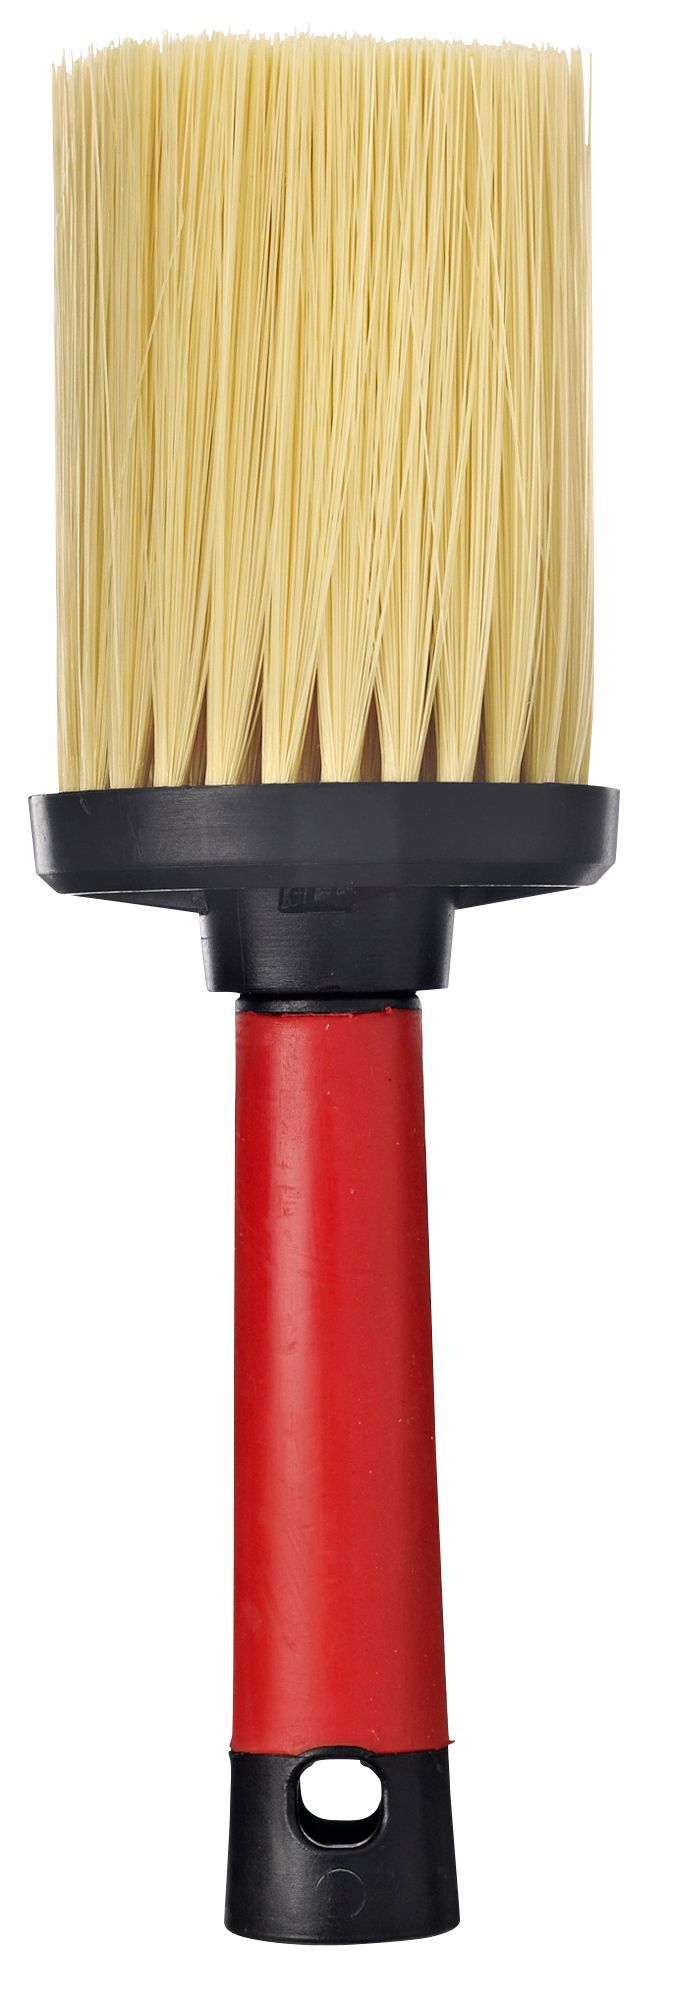 Diall Straight Cut Masonry Brush (w)3 Inches